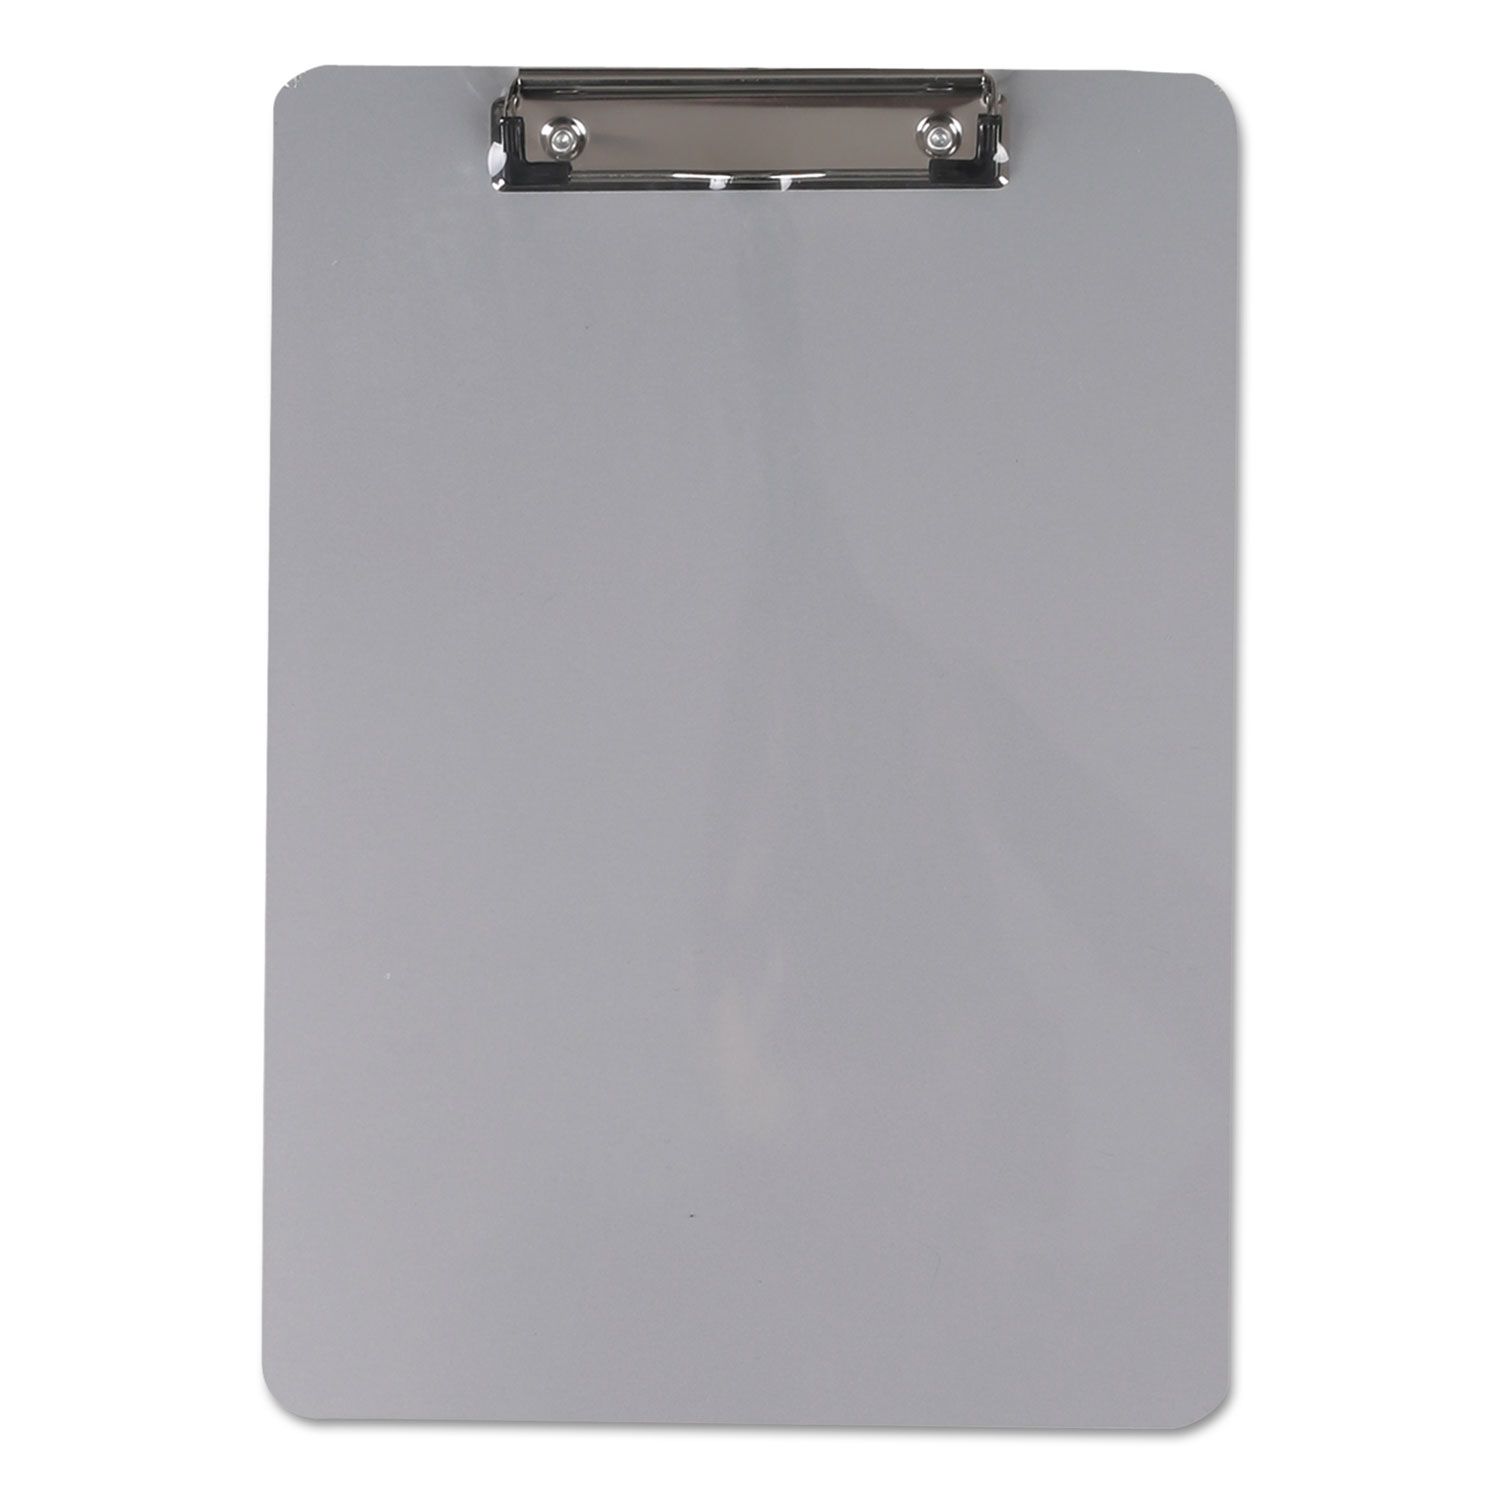 """Aluminum Clipboard with Low Profile Clip, 1/2"""" Capacity, 8 x 11 1/2 Sheets"""